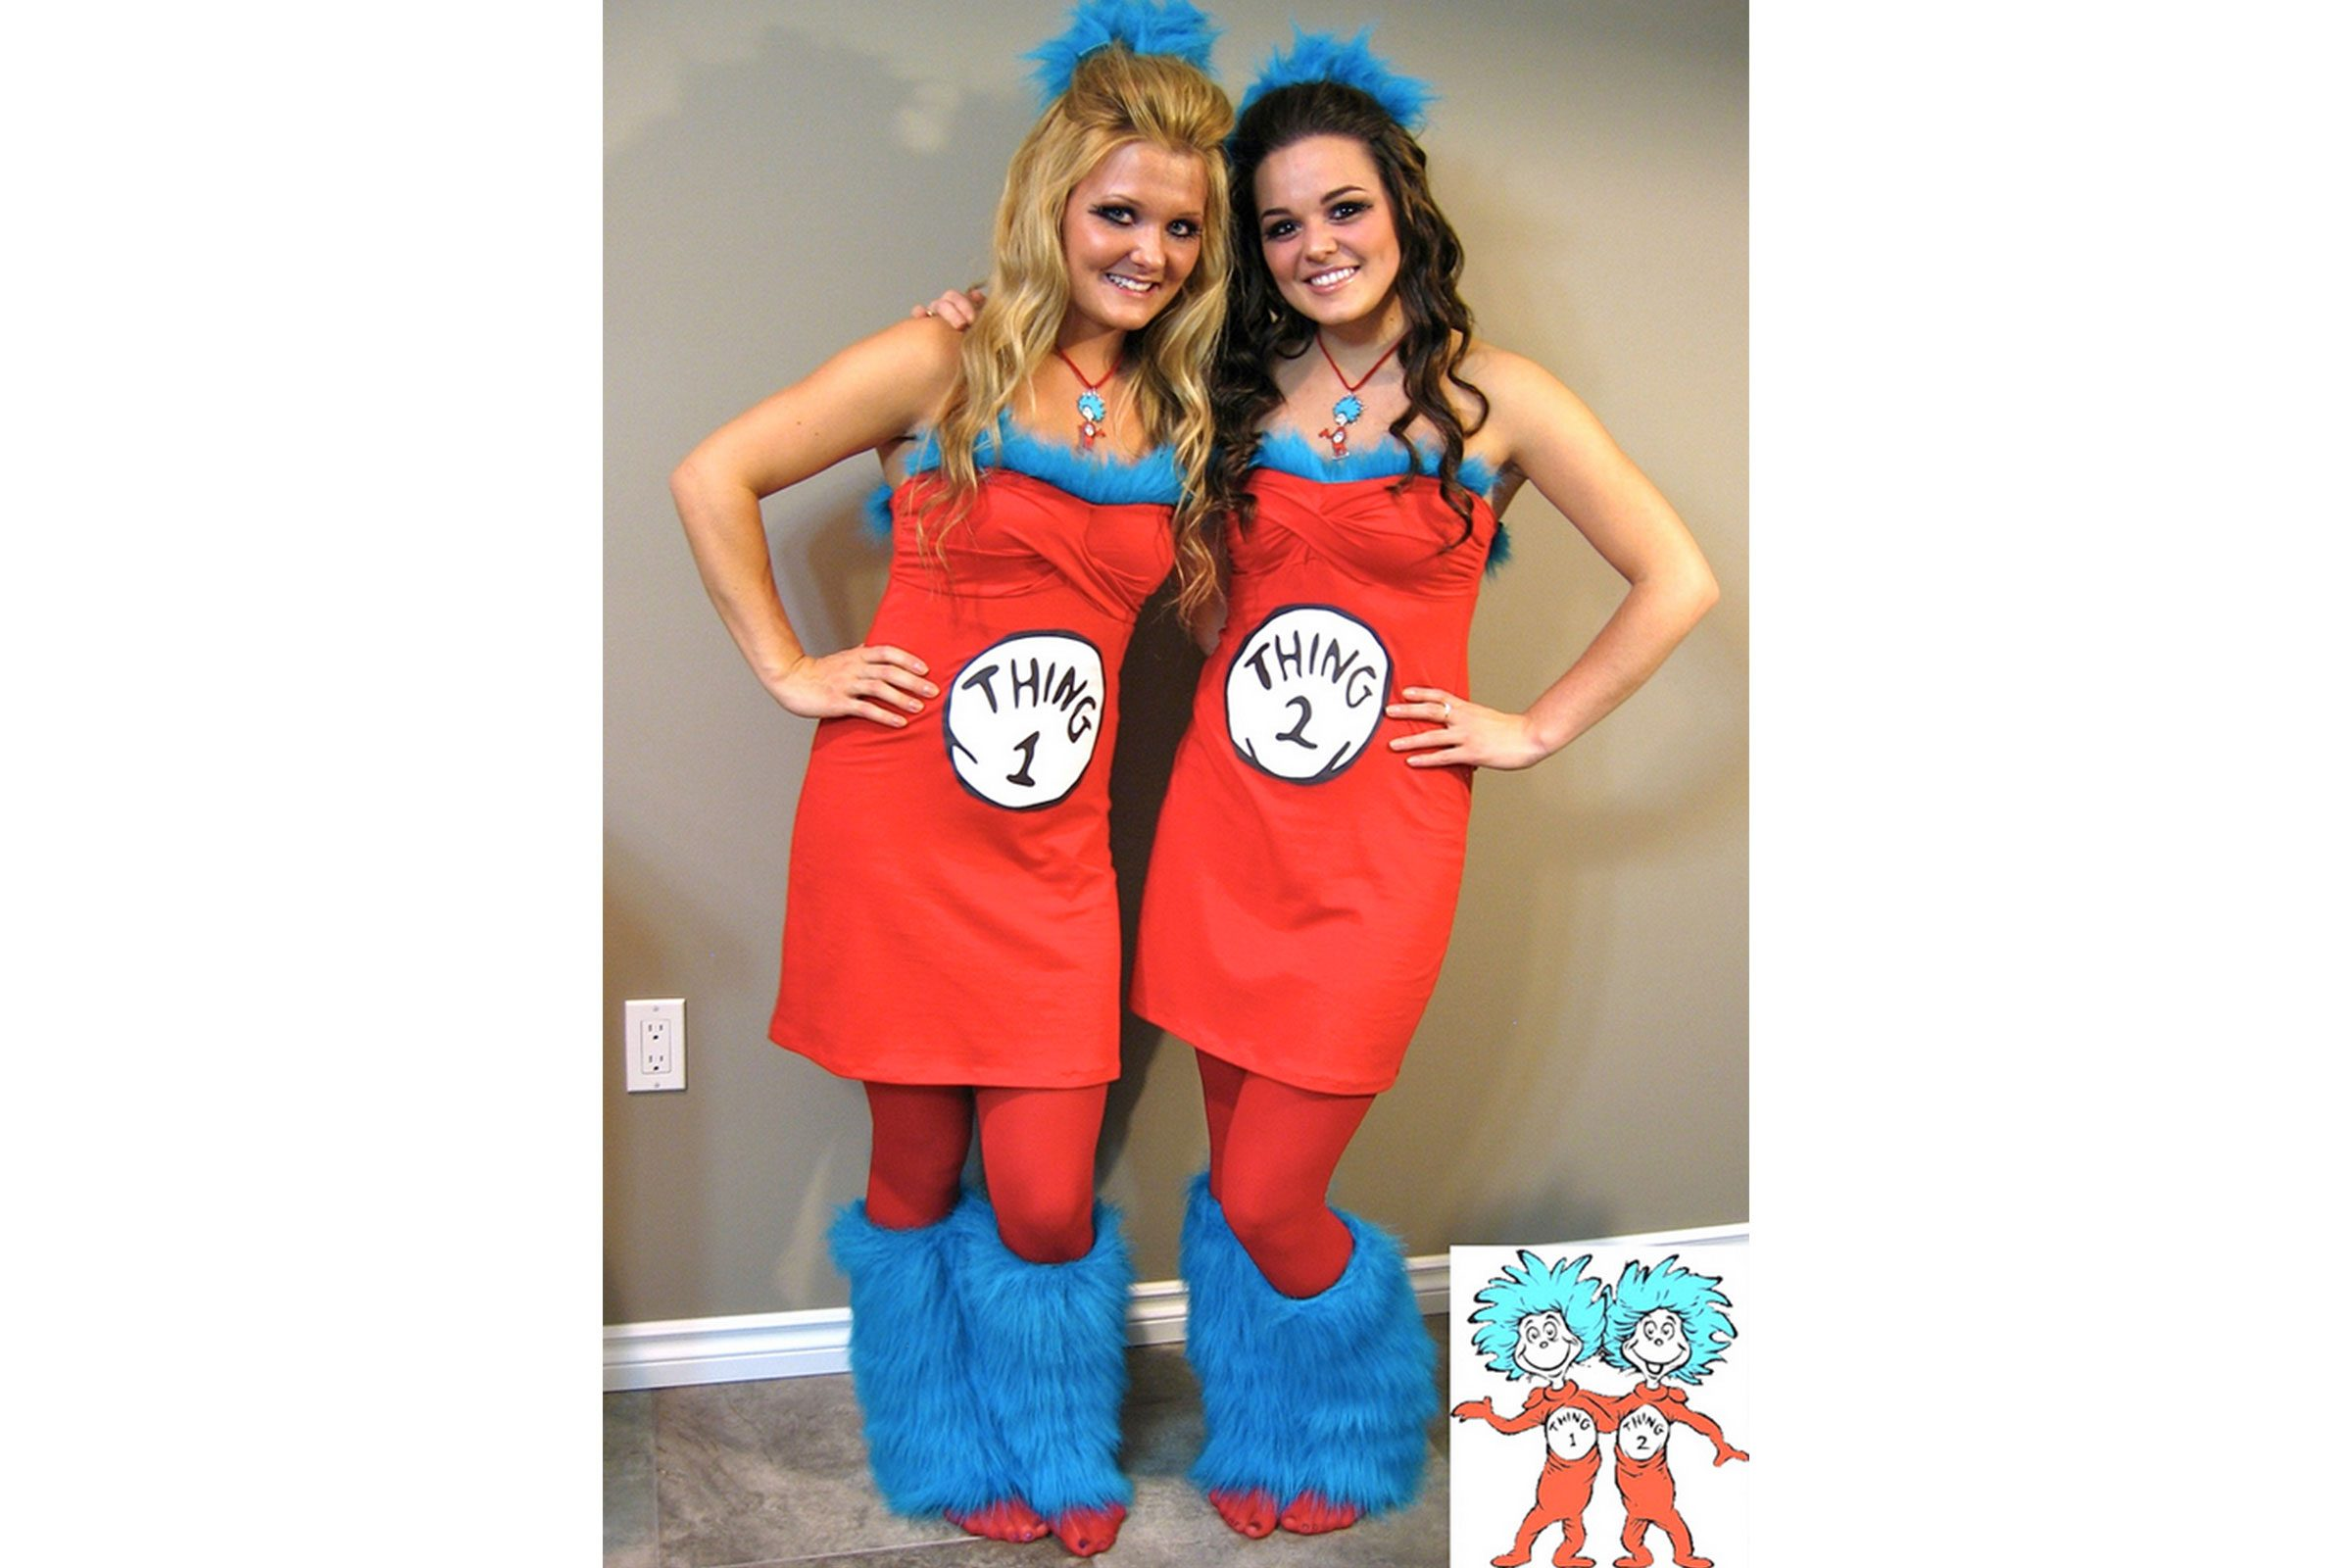 Cheap Halloween Costumes for Adults  Reader\u002639;s Digest